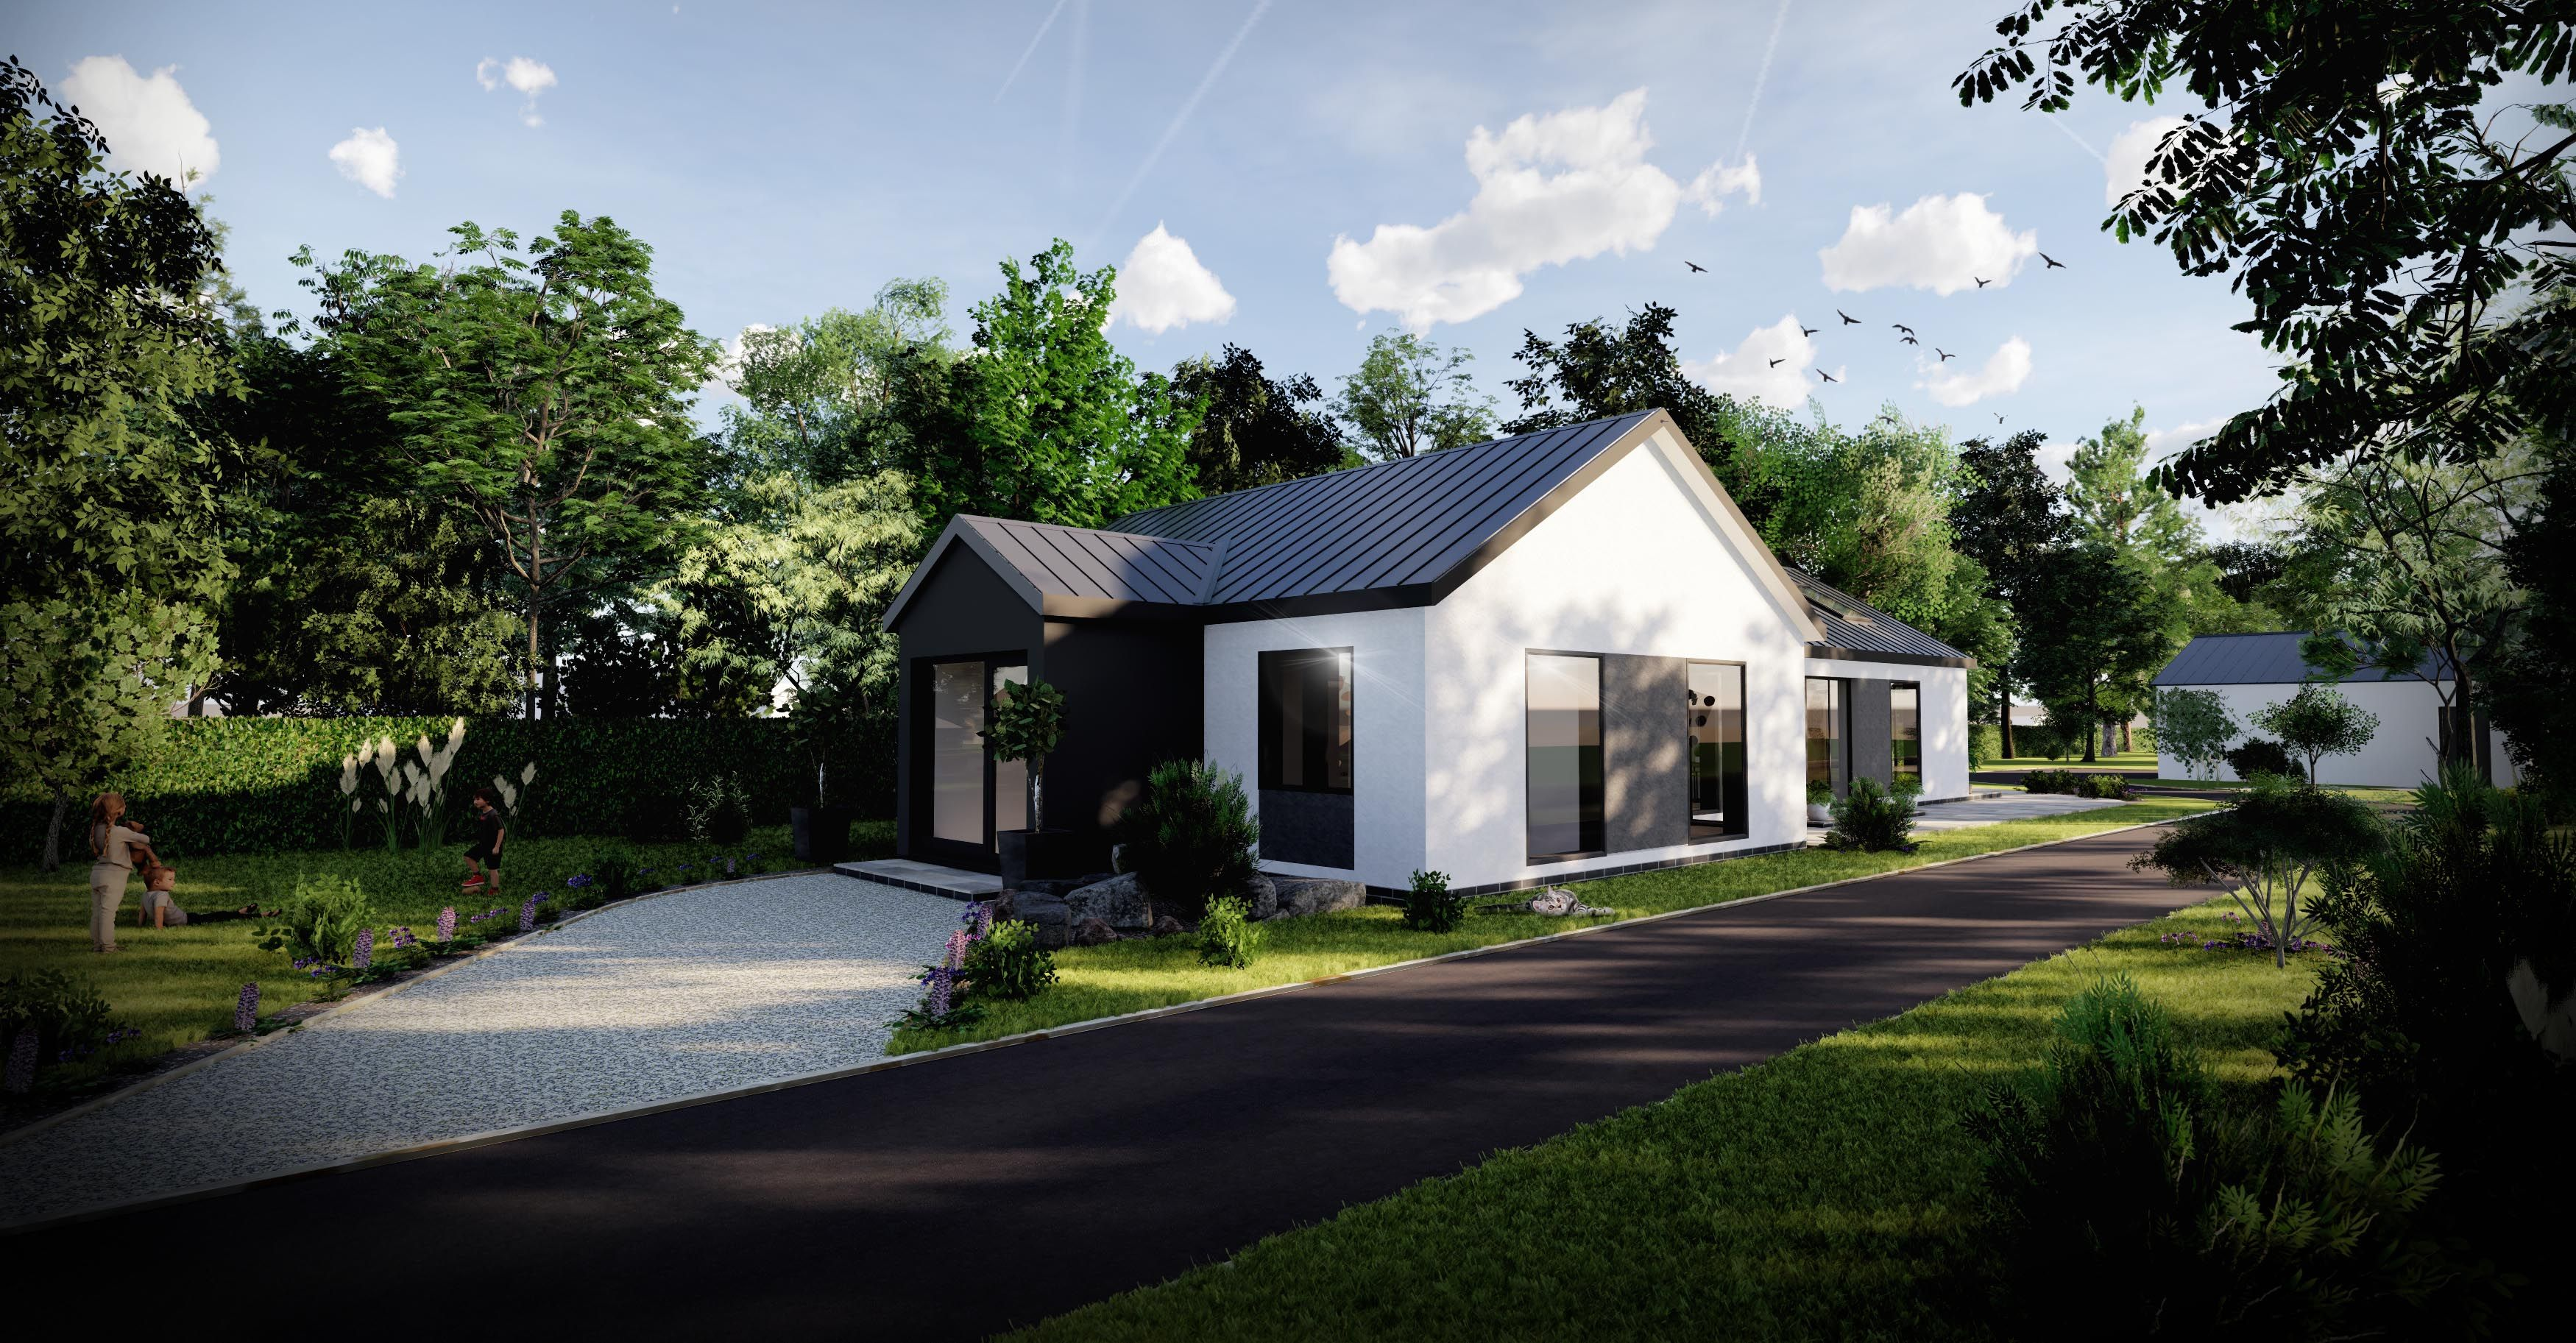 Planning permission granted for bungalow in Chesterfield